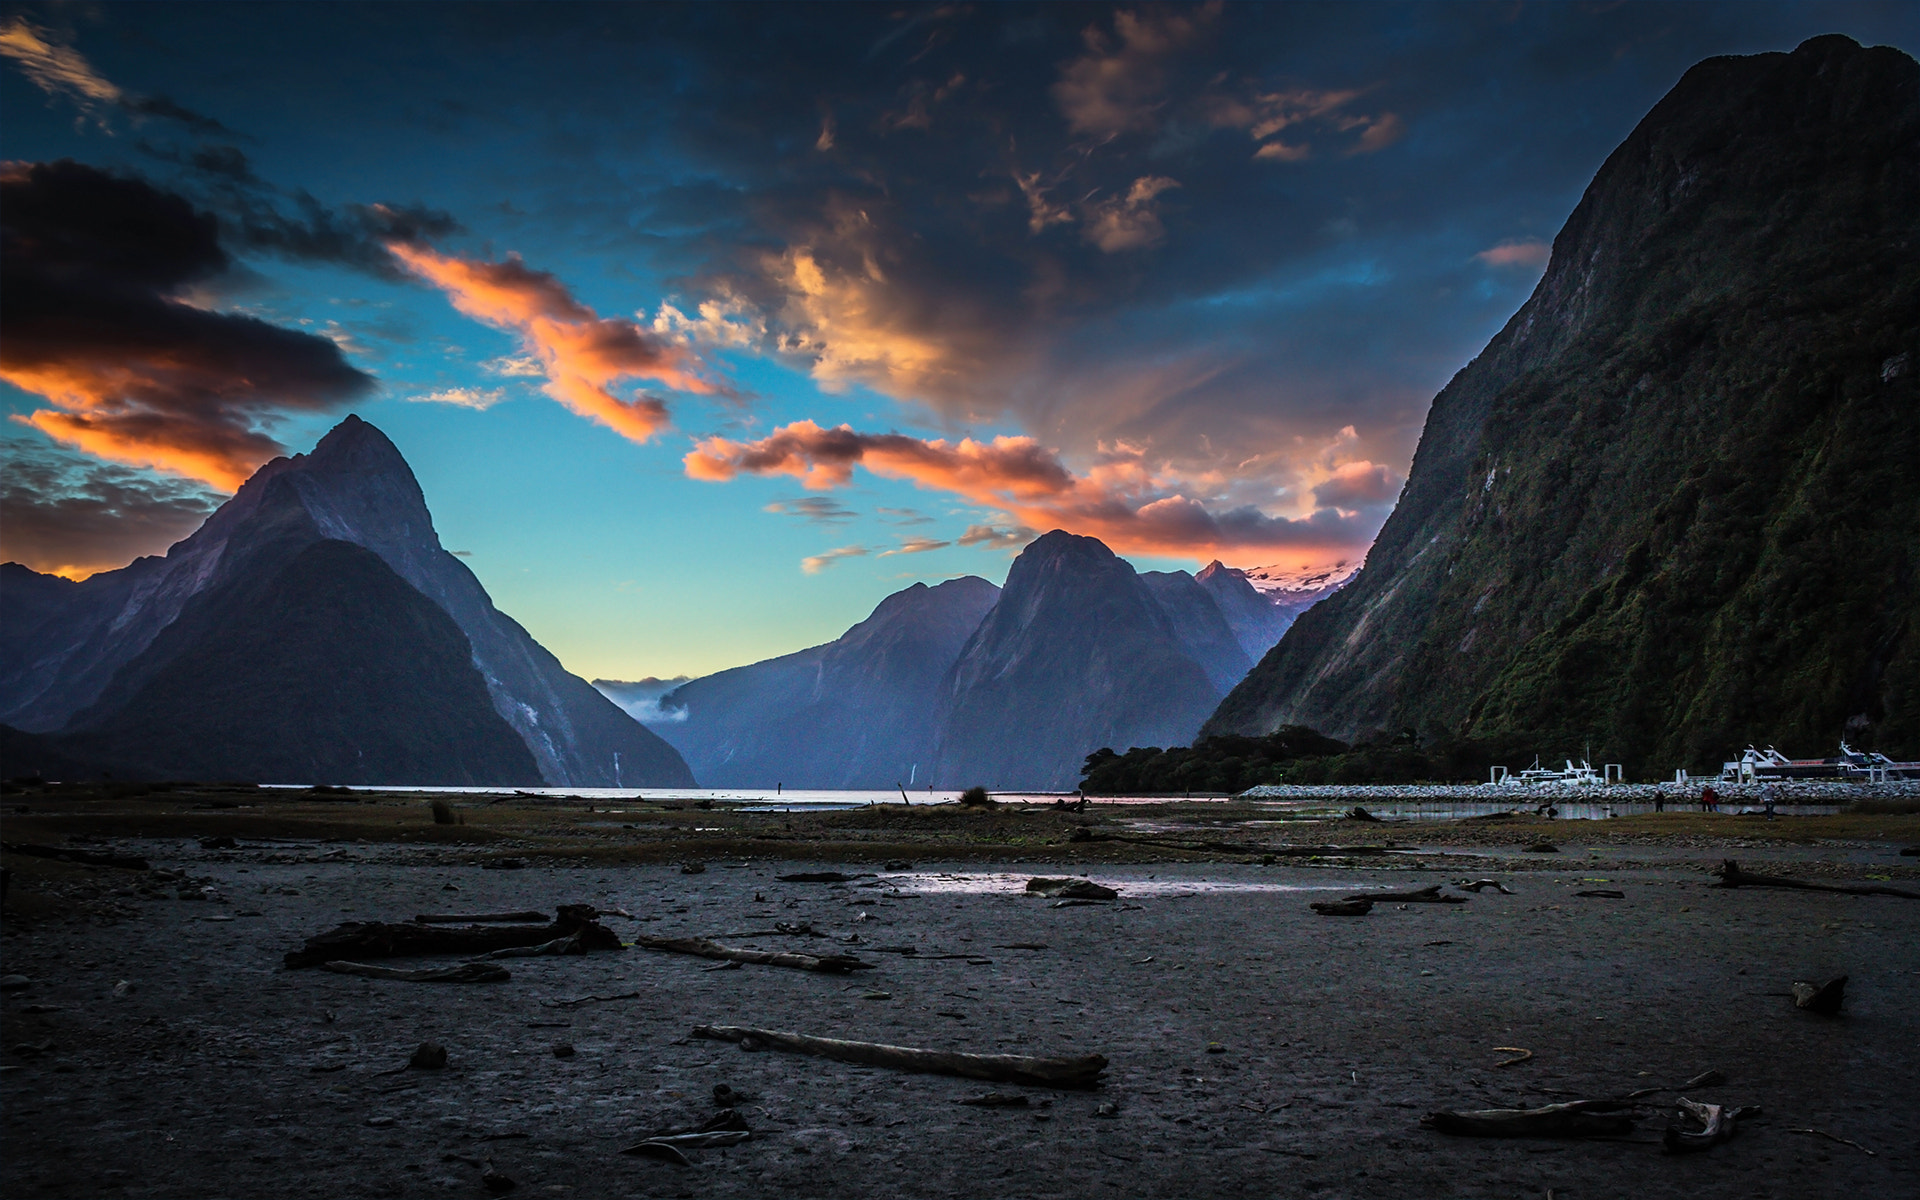 Photograph Milford Sound by Andrew Goodlad on 500px